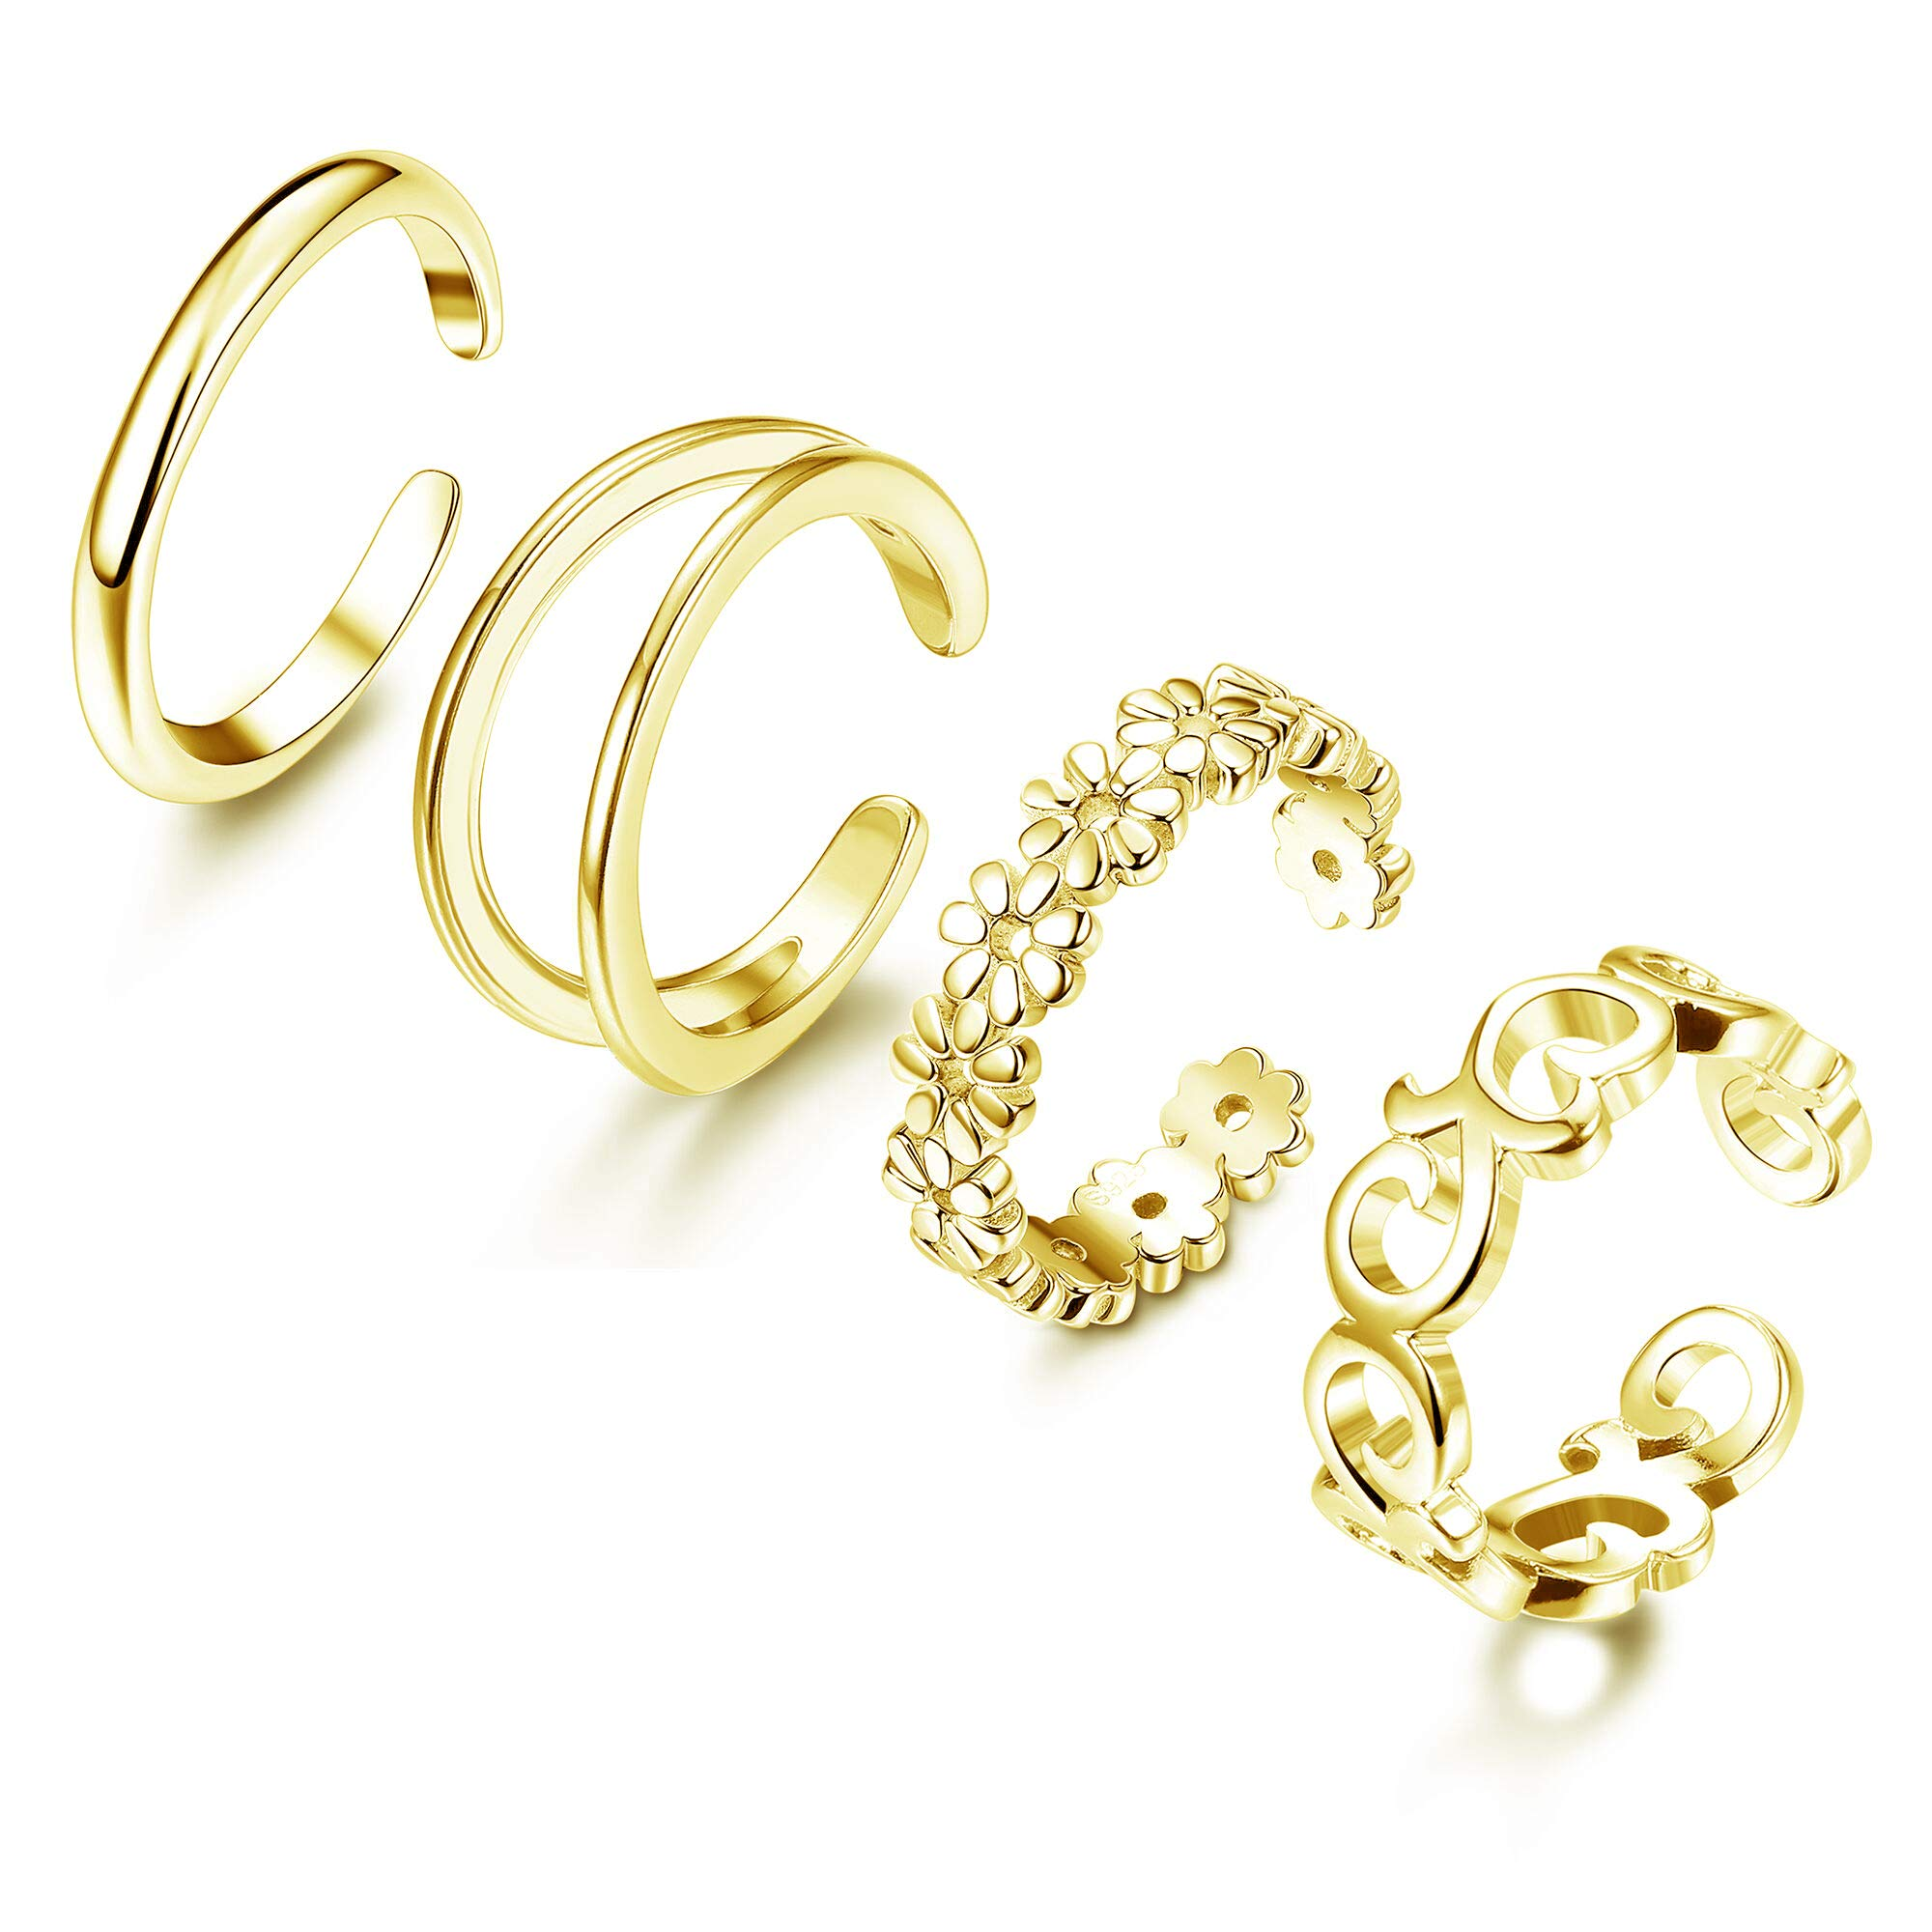 Adramata 4 Pcs 925 Sterling Silver Toe Rings for Women Open Adjustable Band Rings Jewelry Set